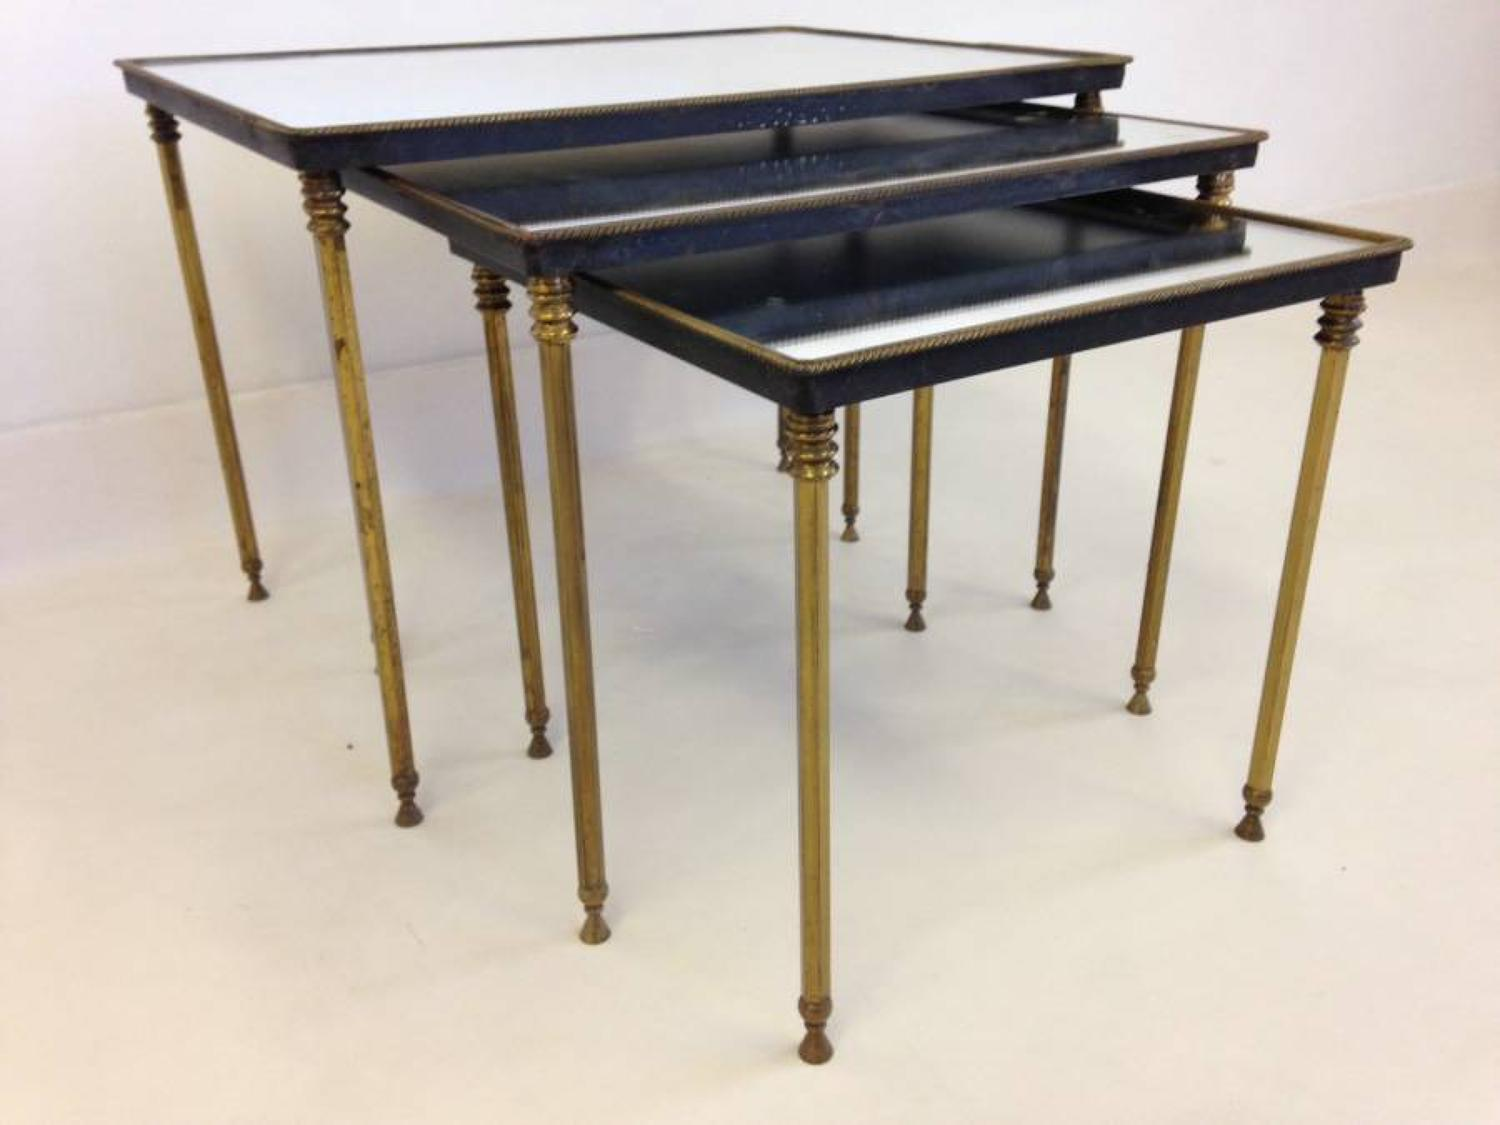 Brass and mirror nest of tables